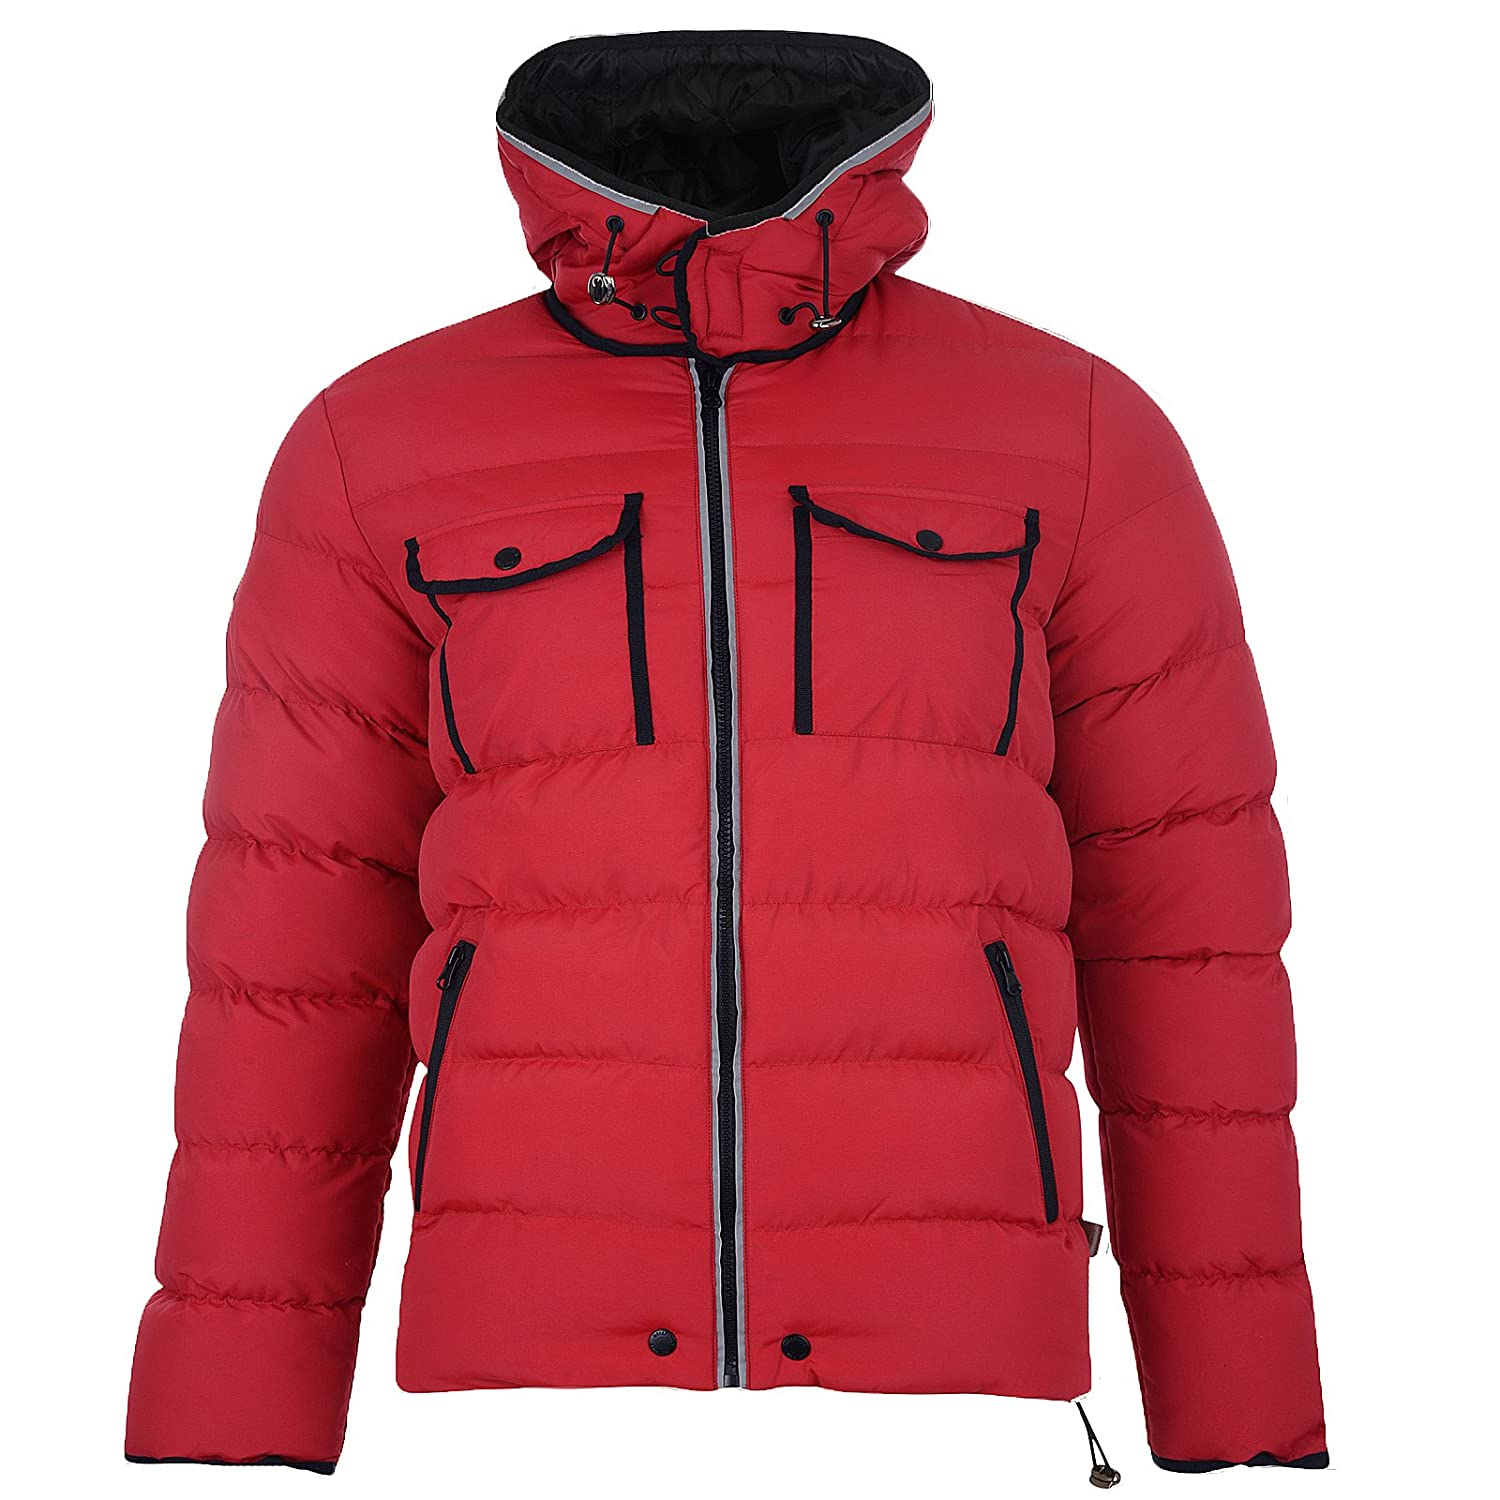 Mens Jacket Bellfield New Hooded Casual Fashion Padded Puffer Warm Winter Coat